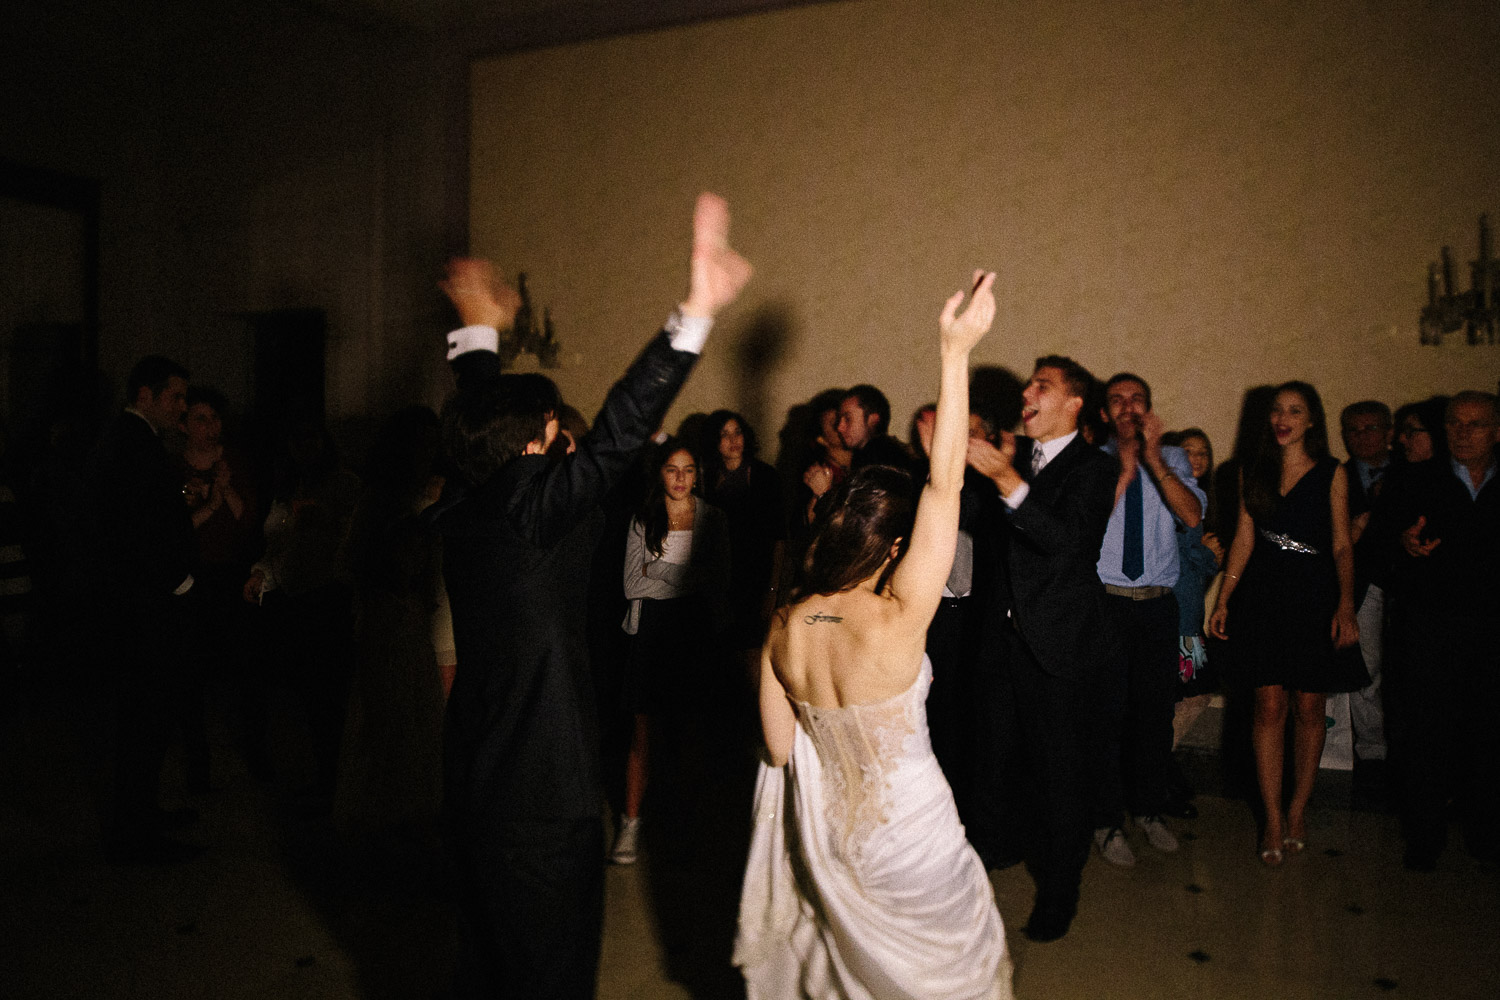 103-groom-bride-dancing.jpg